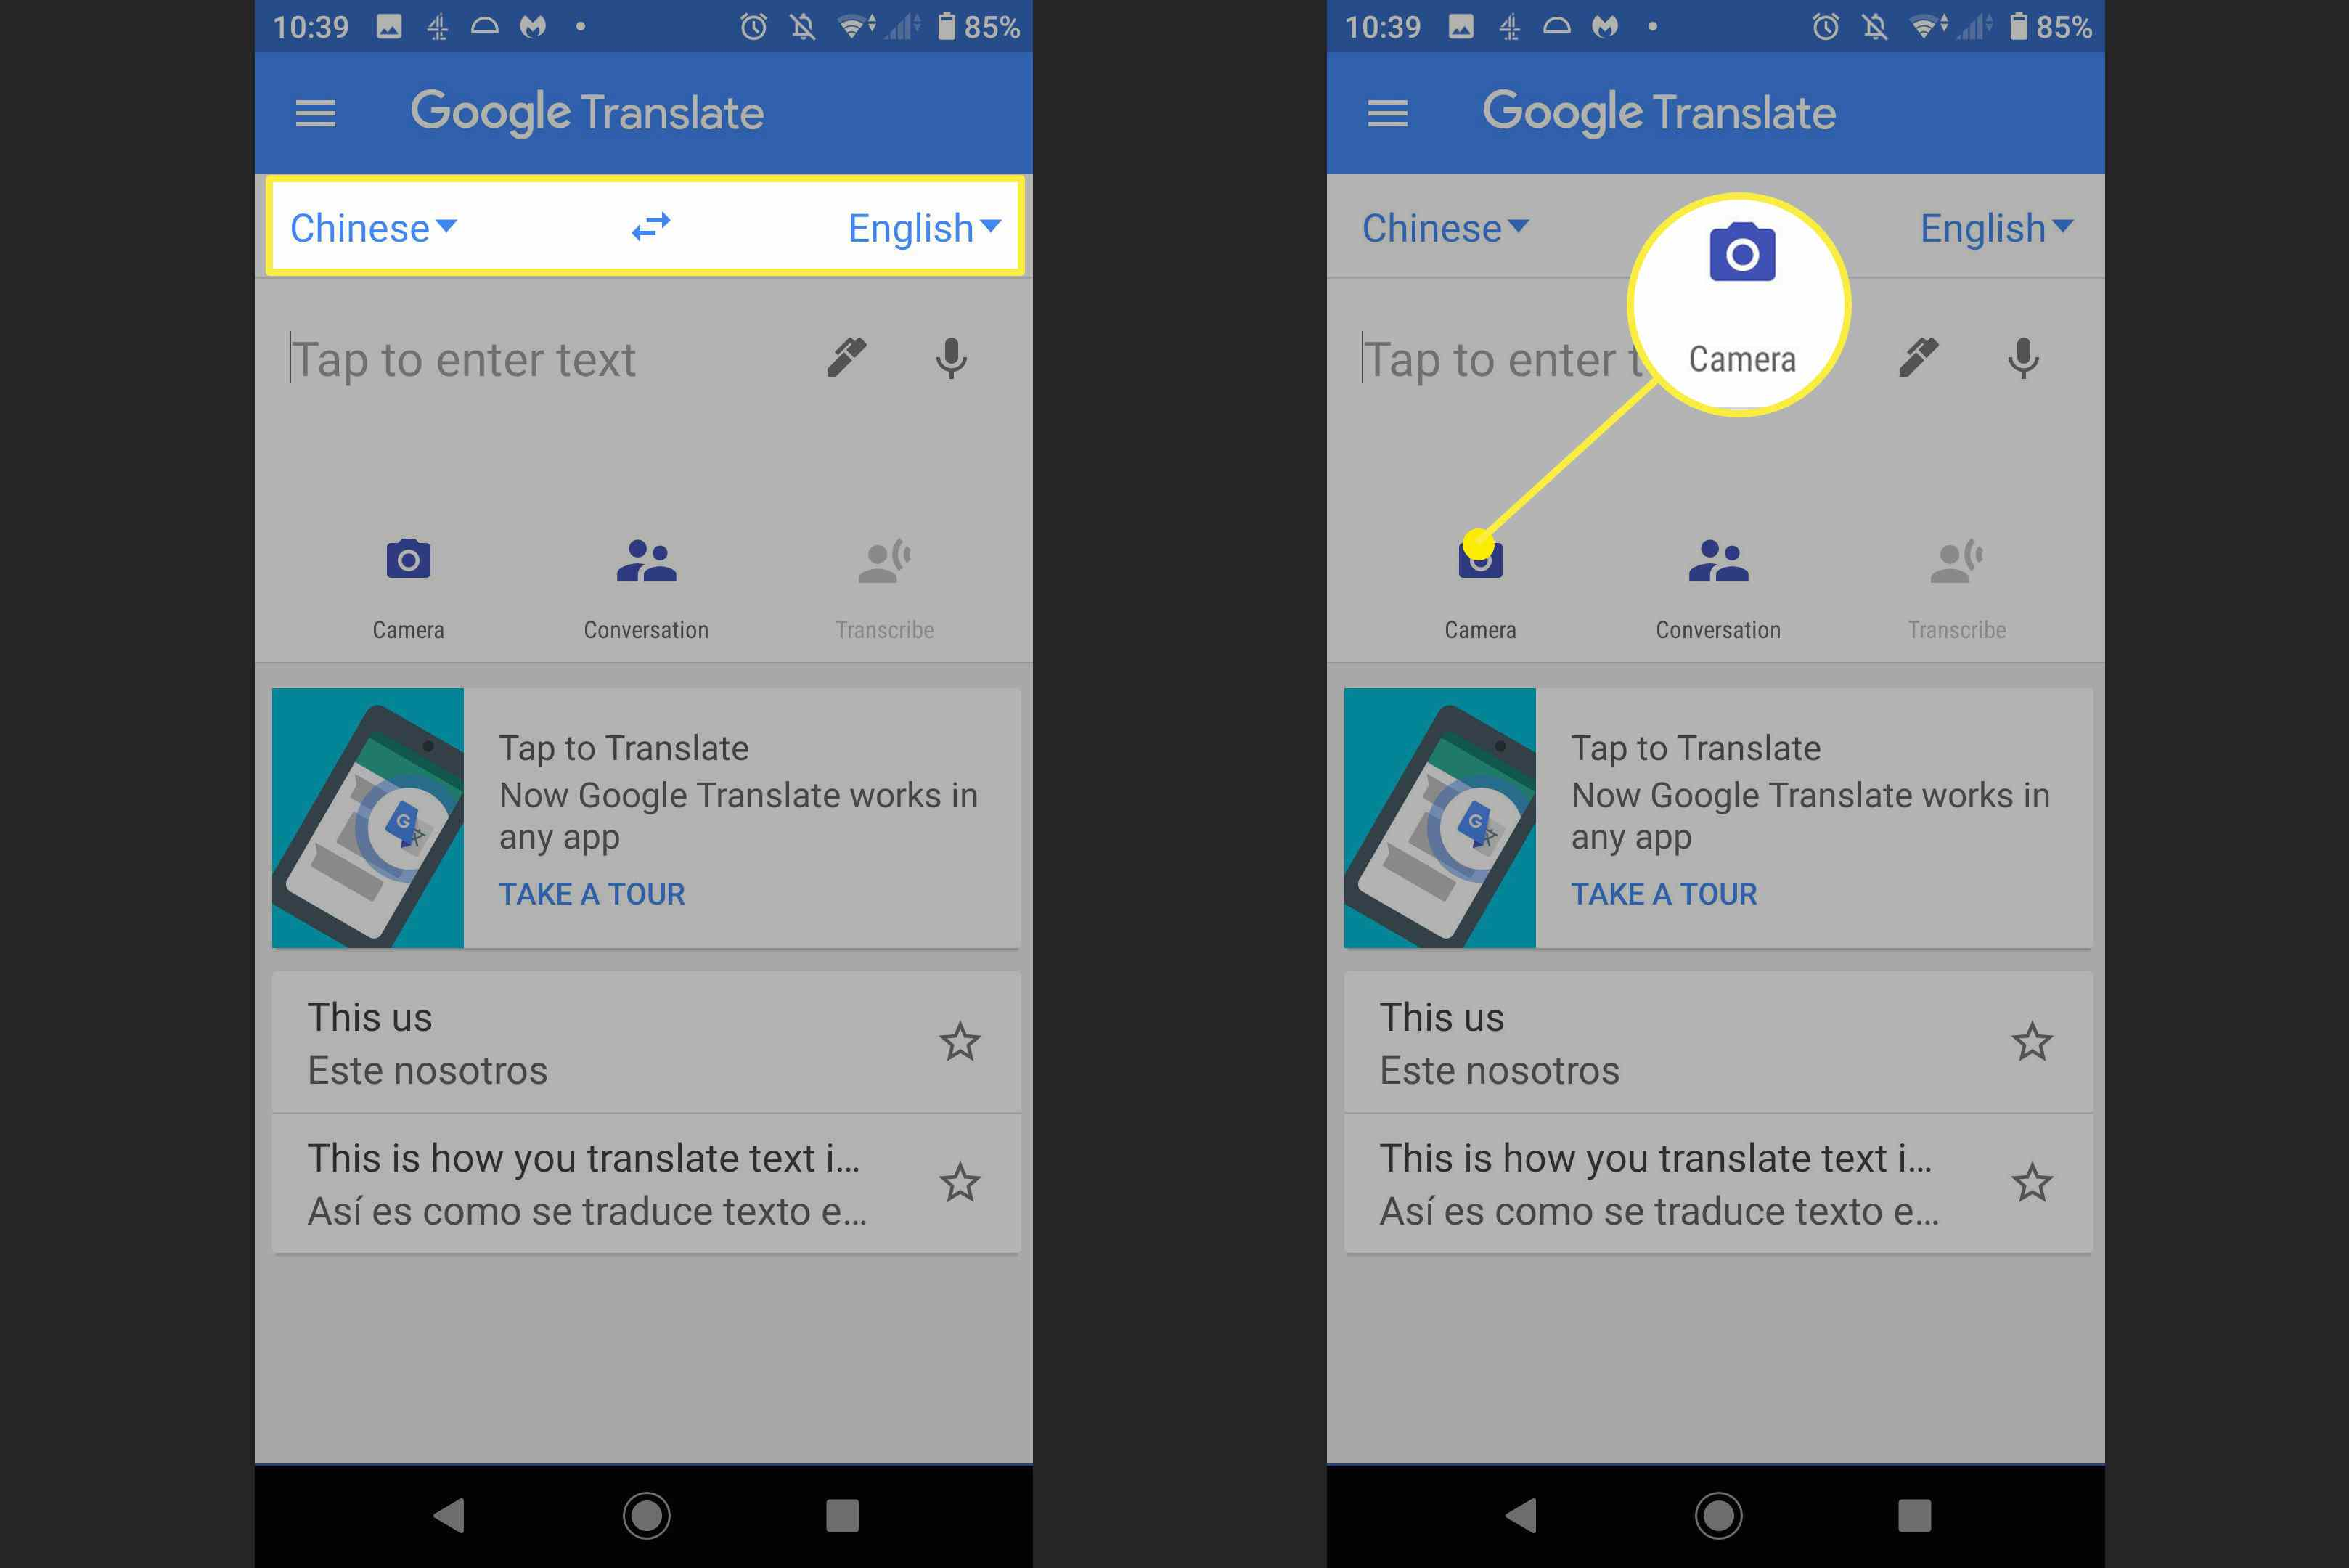 Screenshots of how to use the camera with Google Translate.